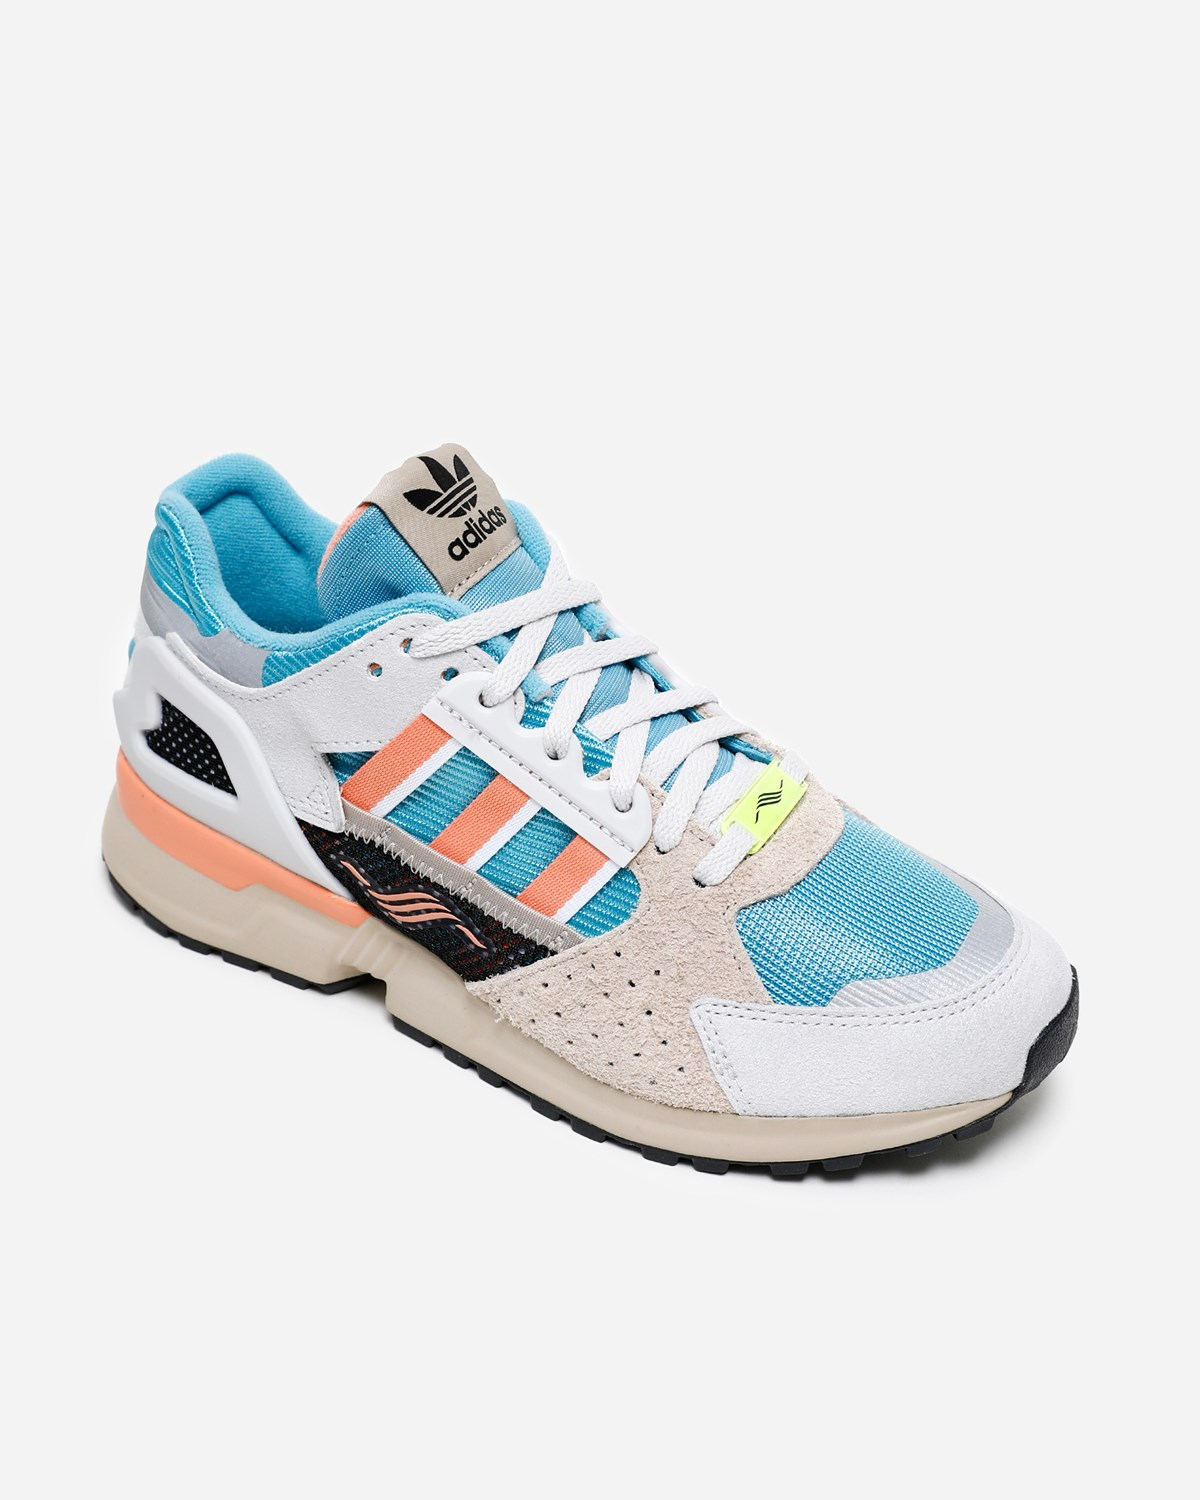 Adidas ZX 10,000 C Supcol | EE9485 - Naked